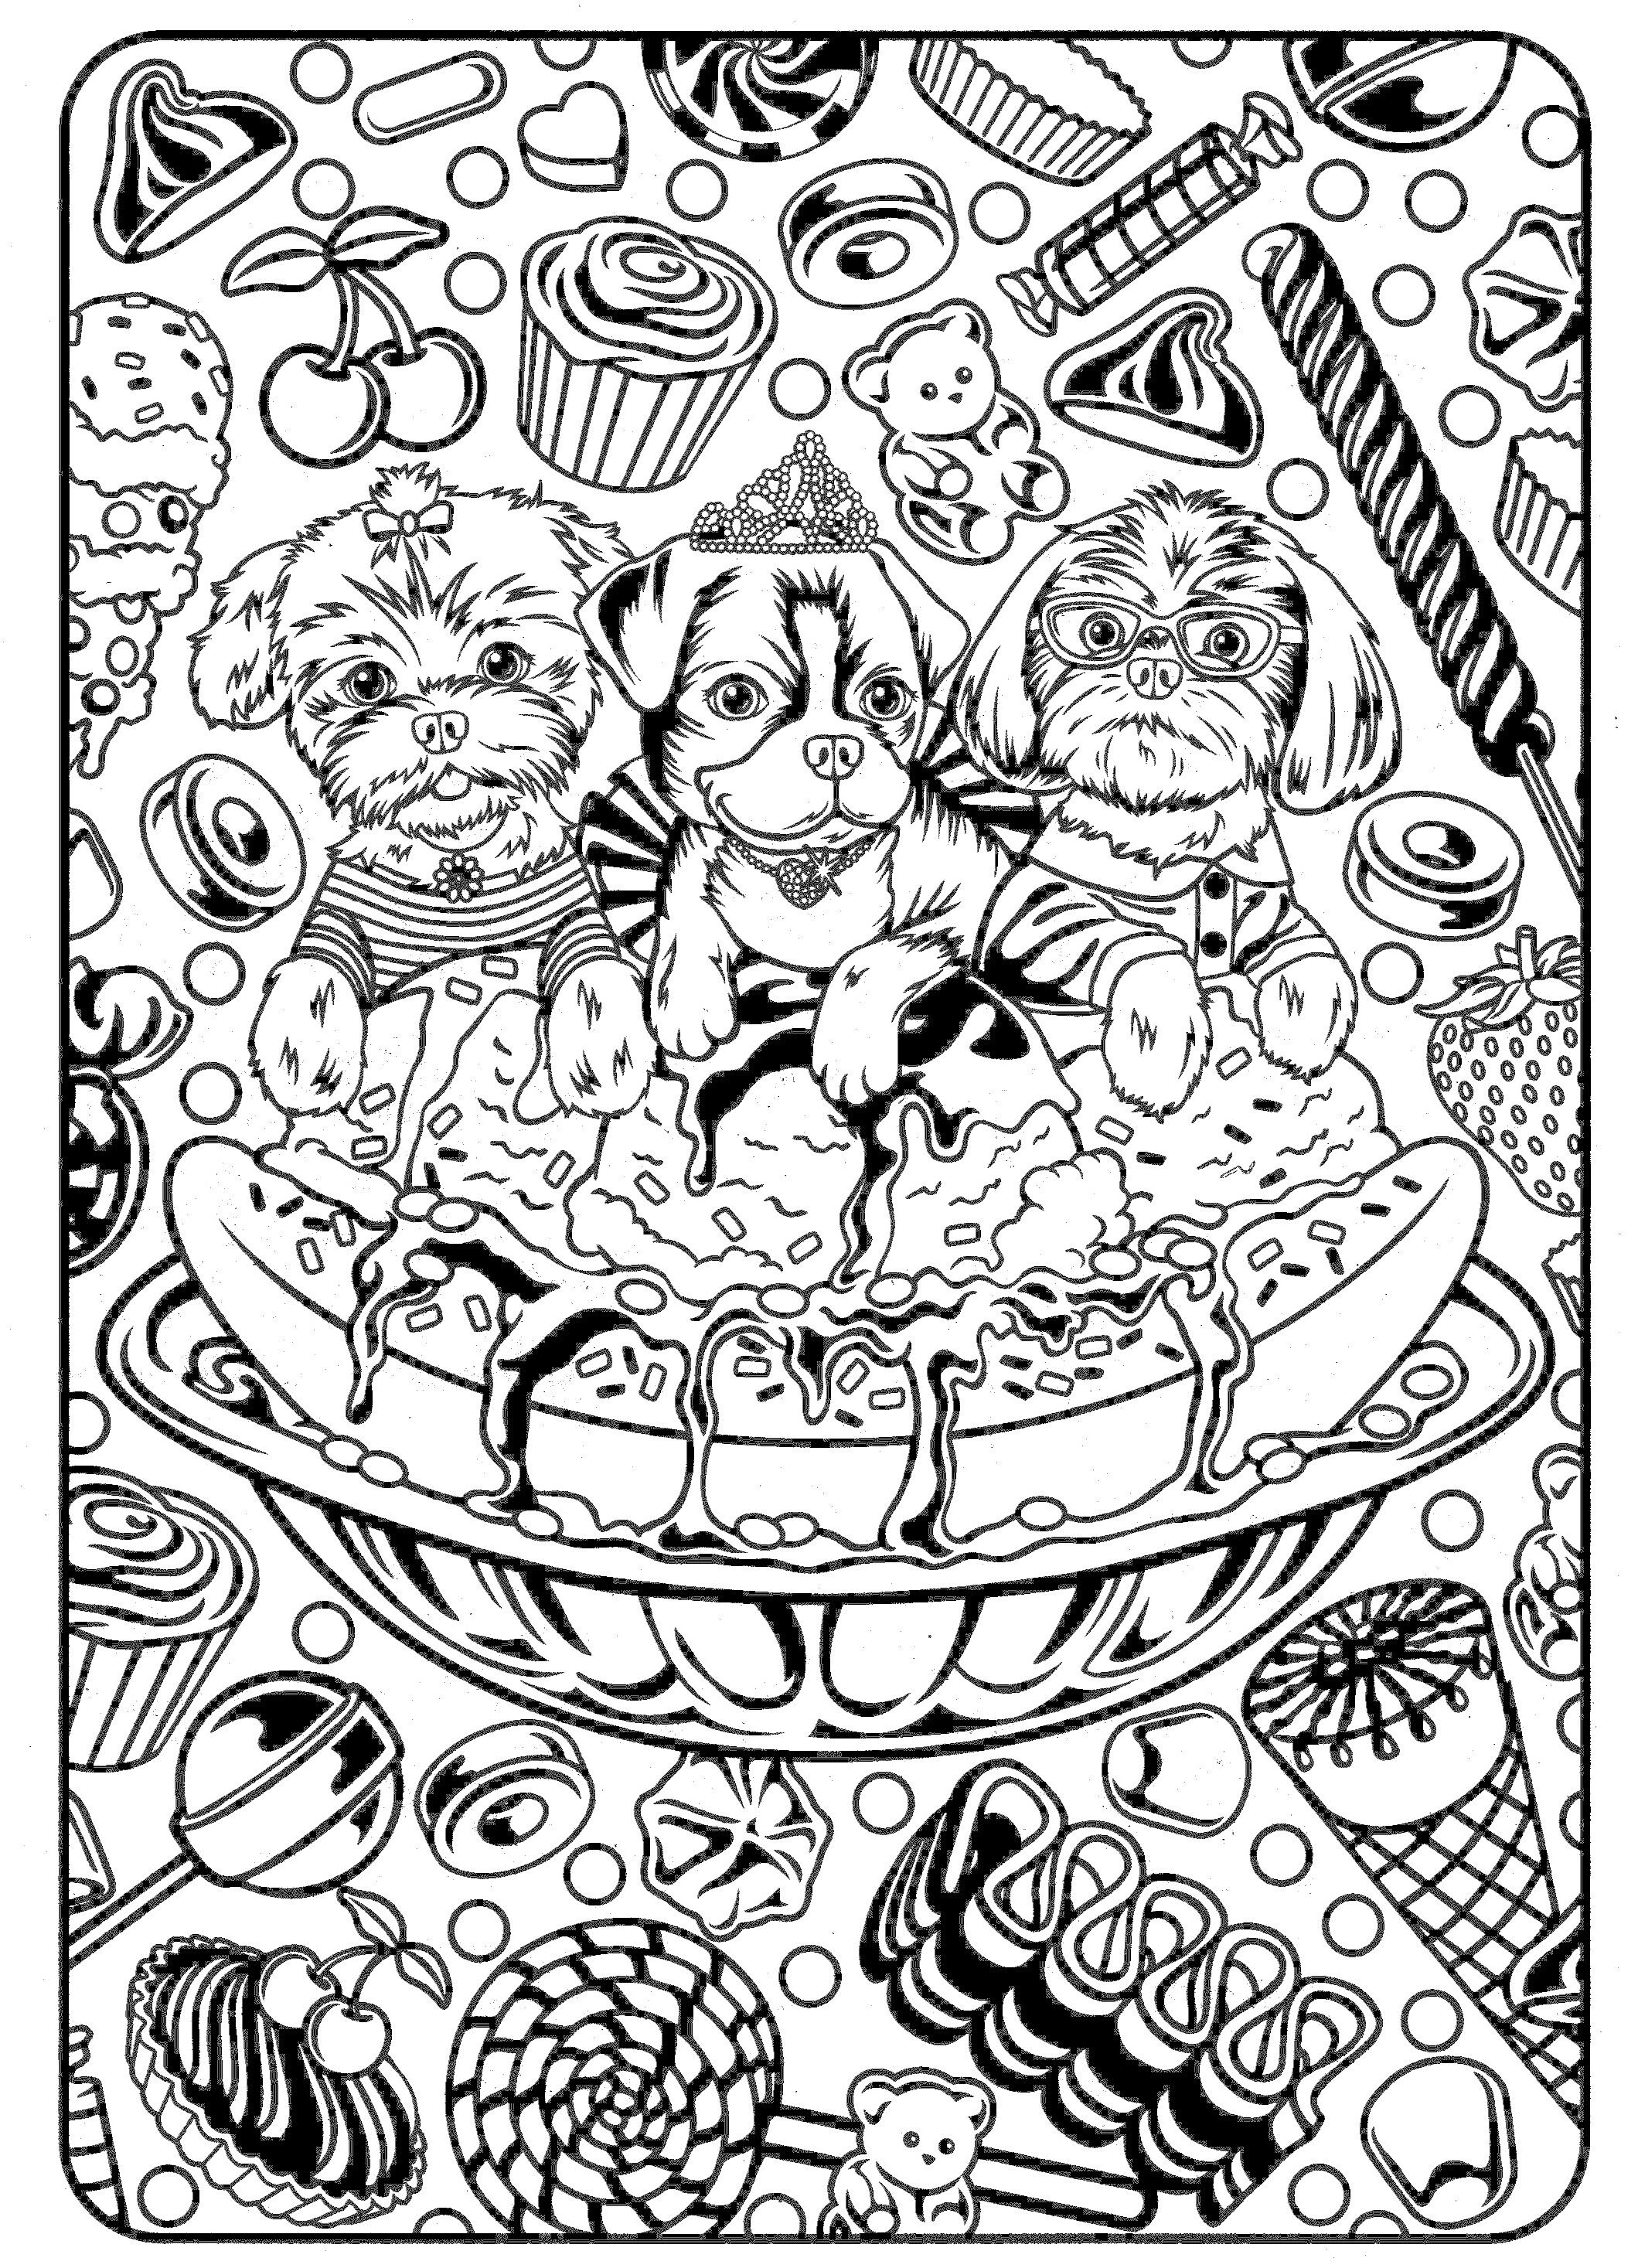 Dog Coloring Pages For Adults Coloring Pages For Adults Dogs At Getdrawings Free For